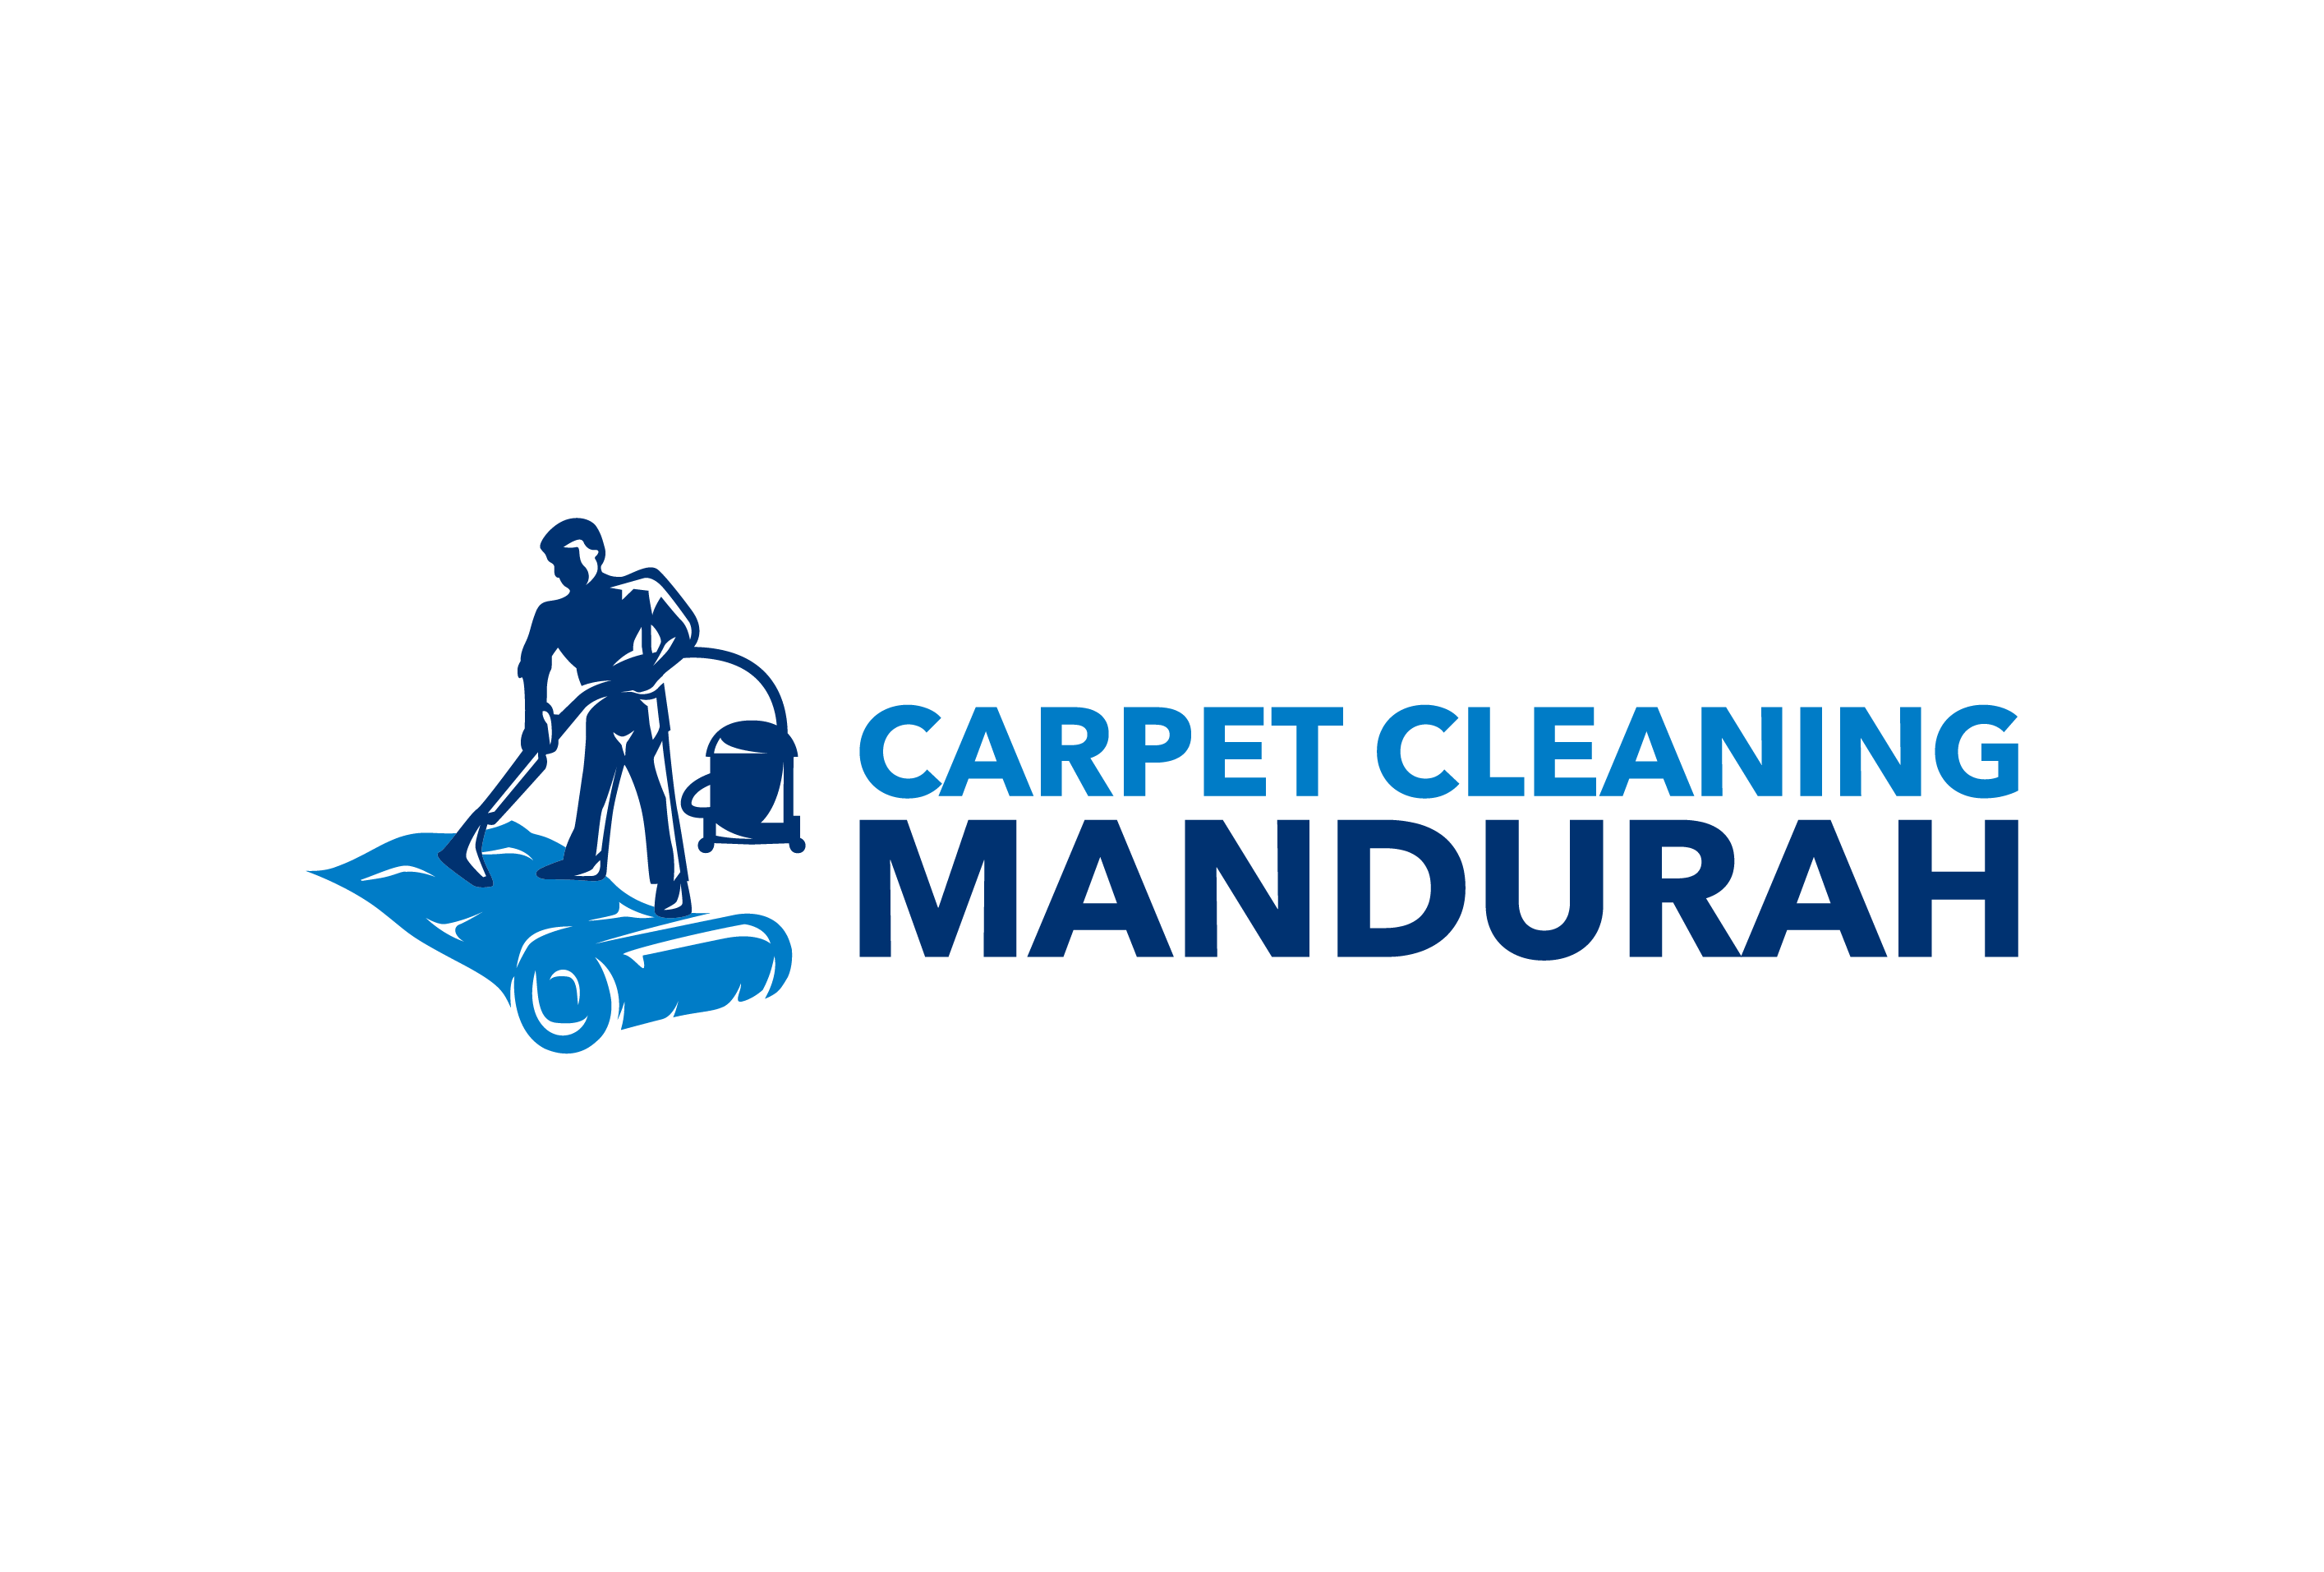 Carpet Cleaning Mandurah WA Logo